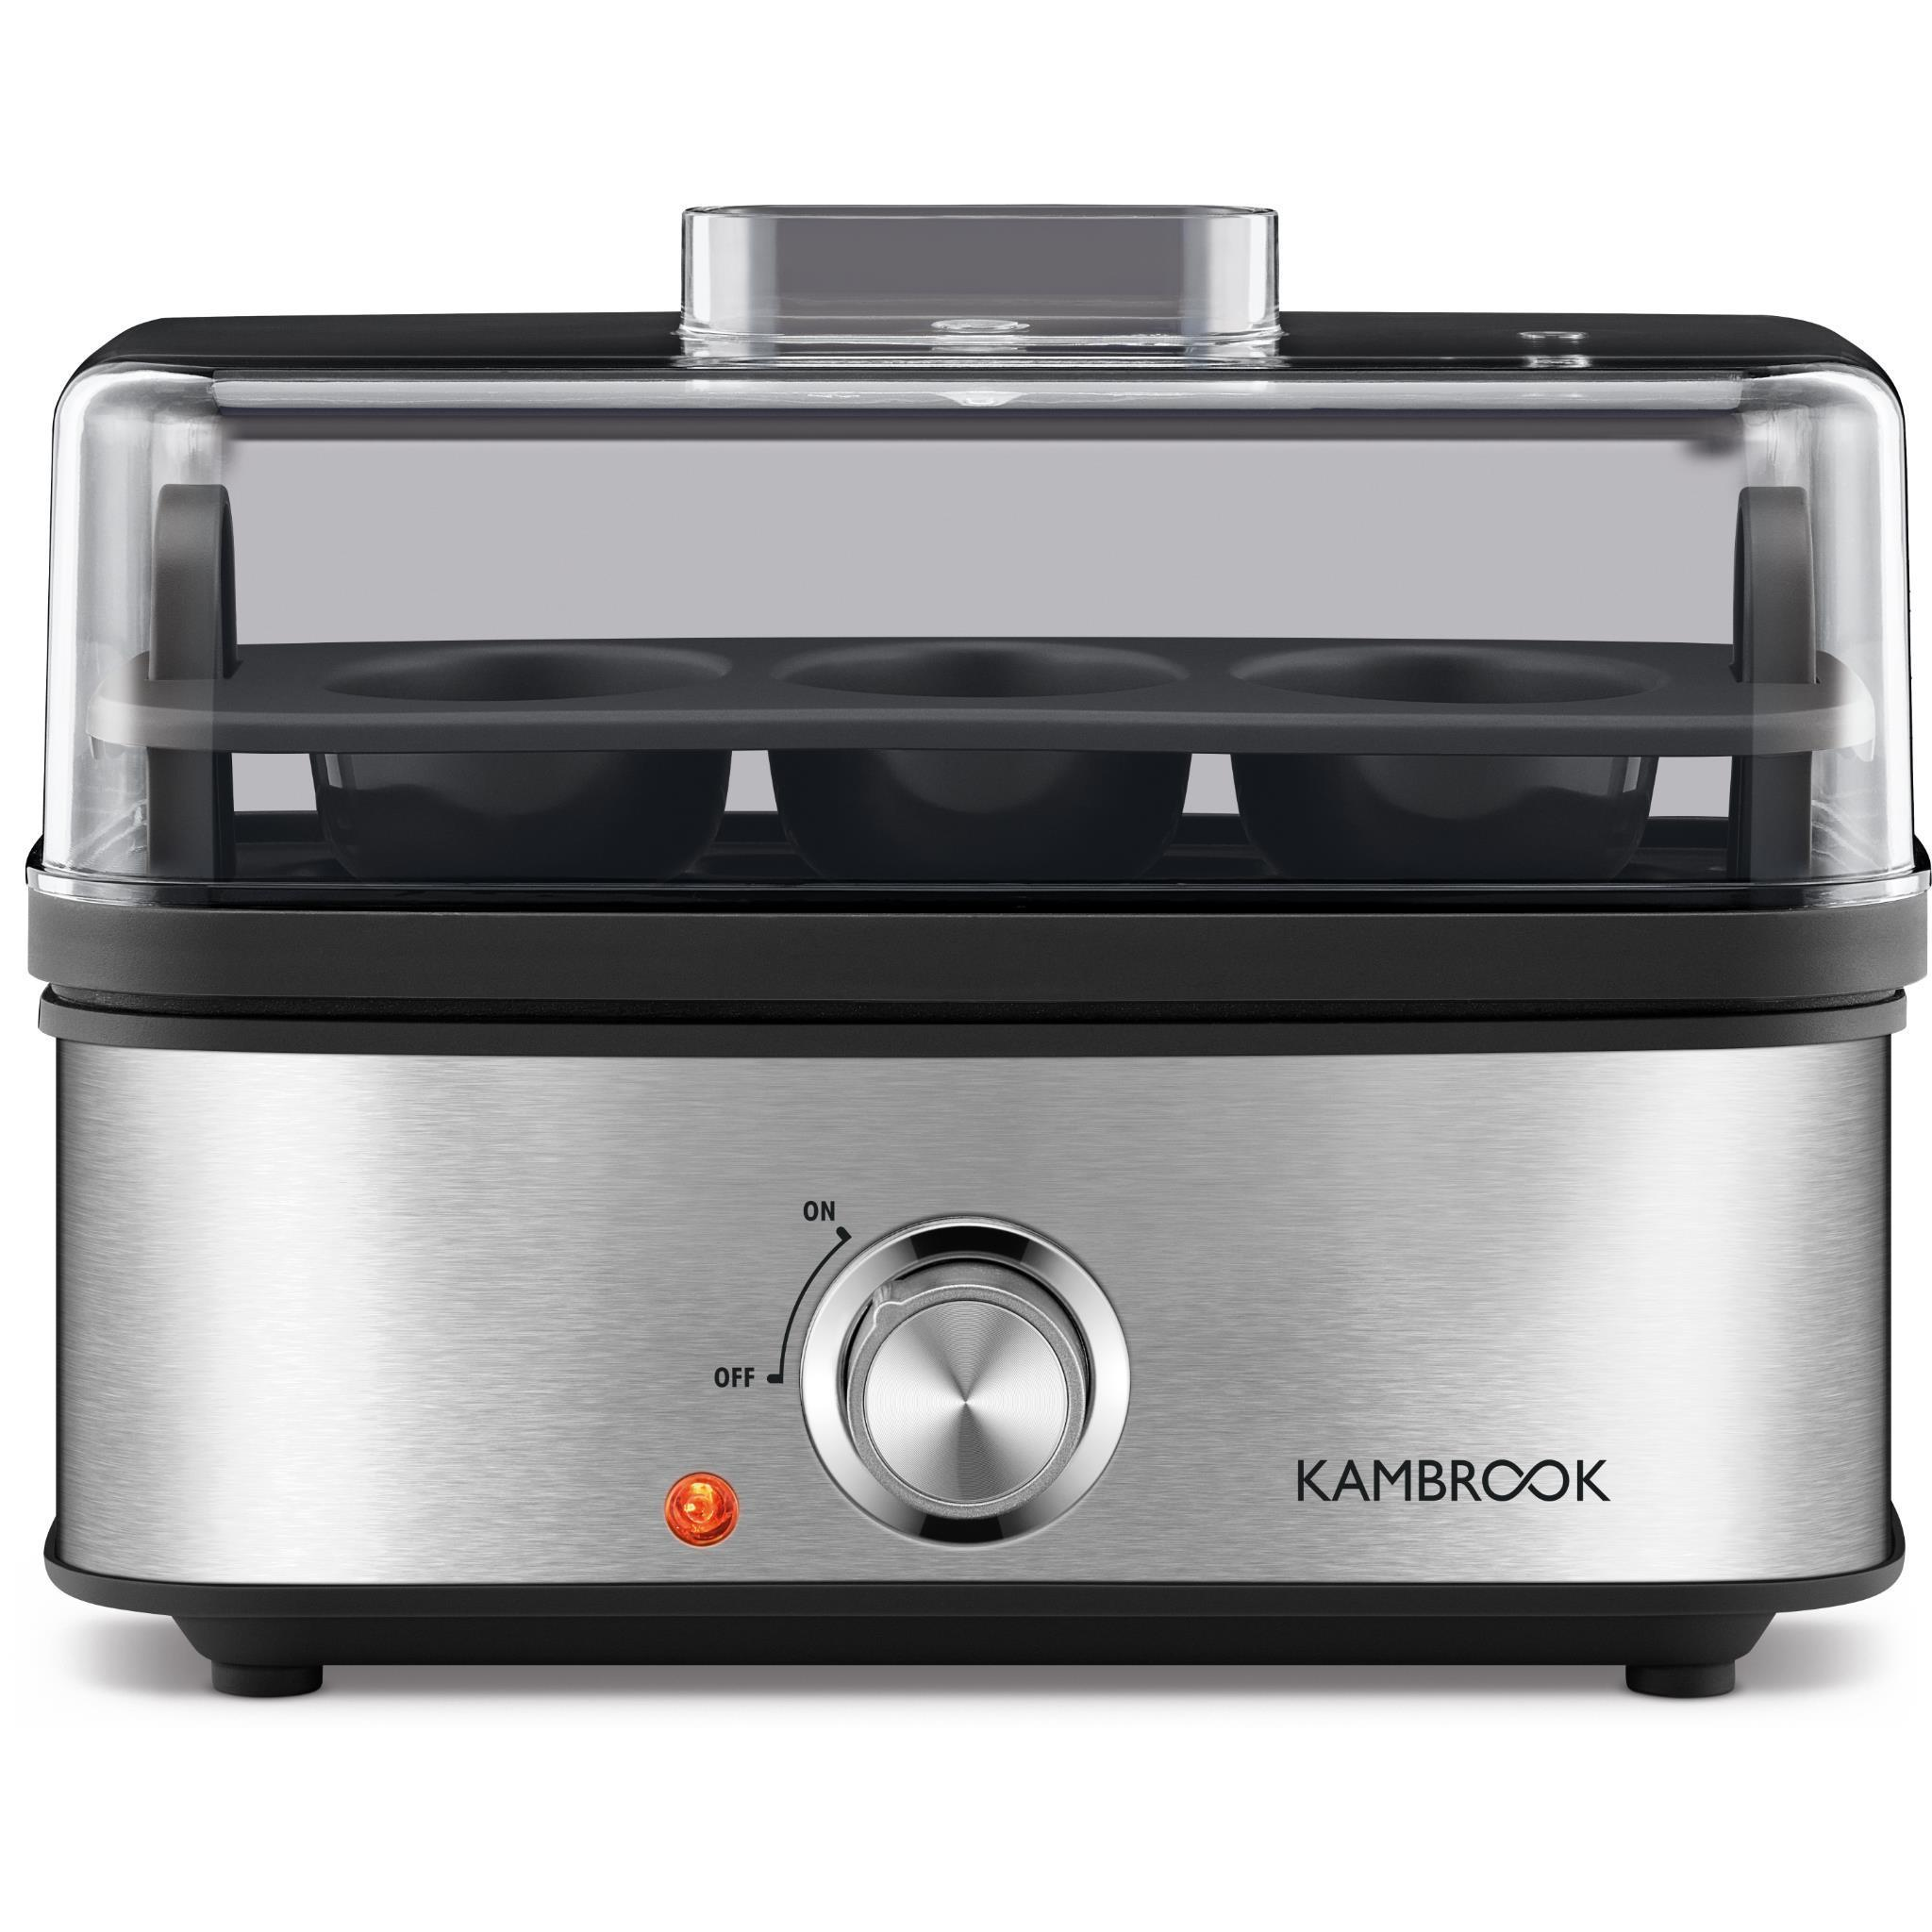 Kambrook 3 Way Egg Cooker